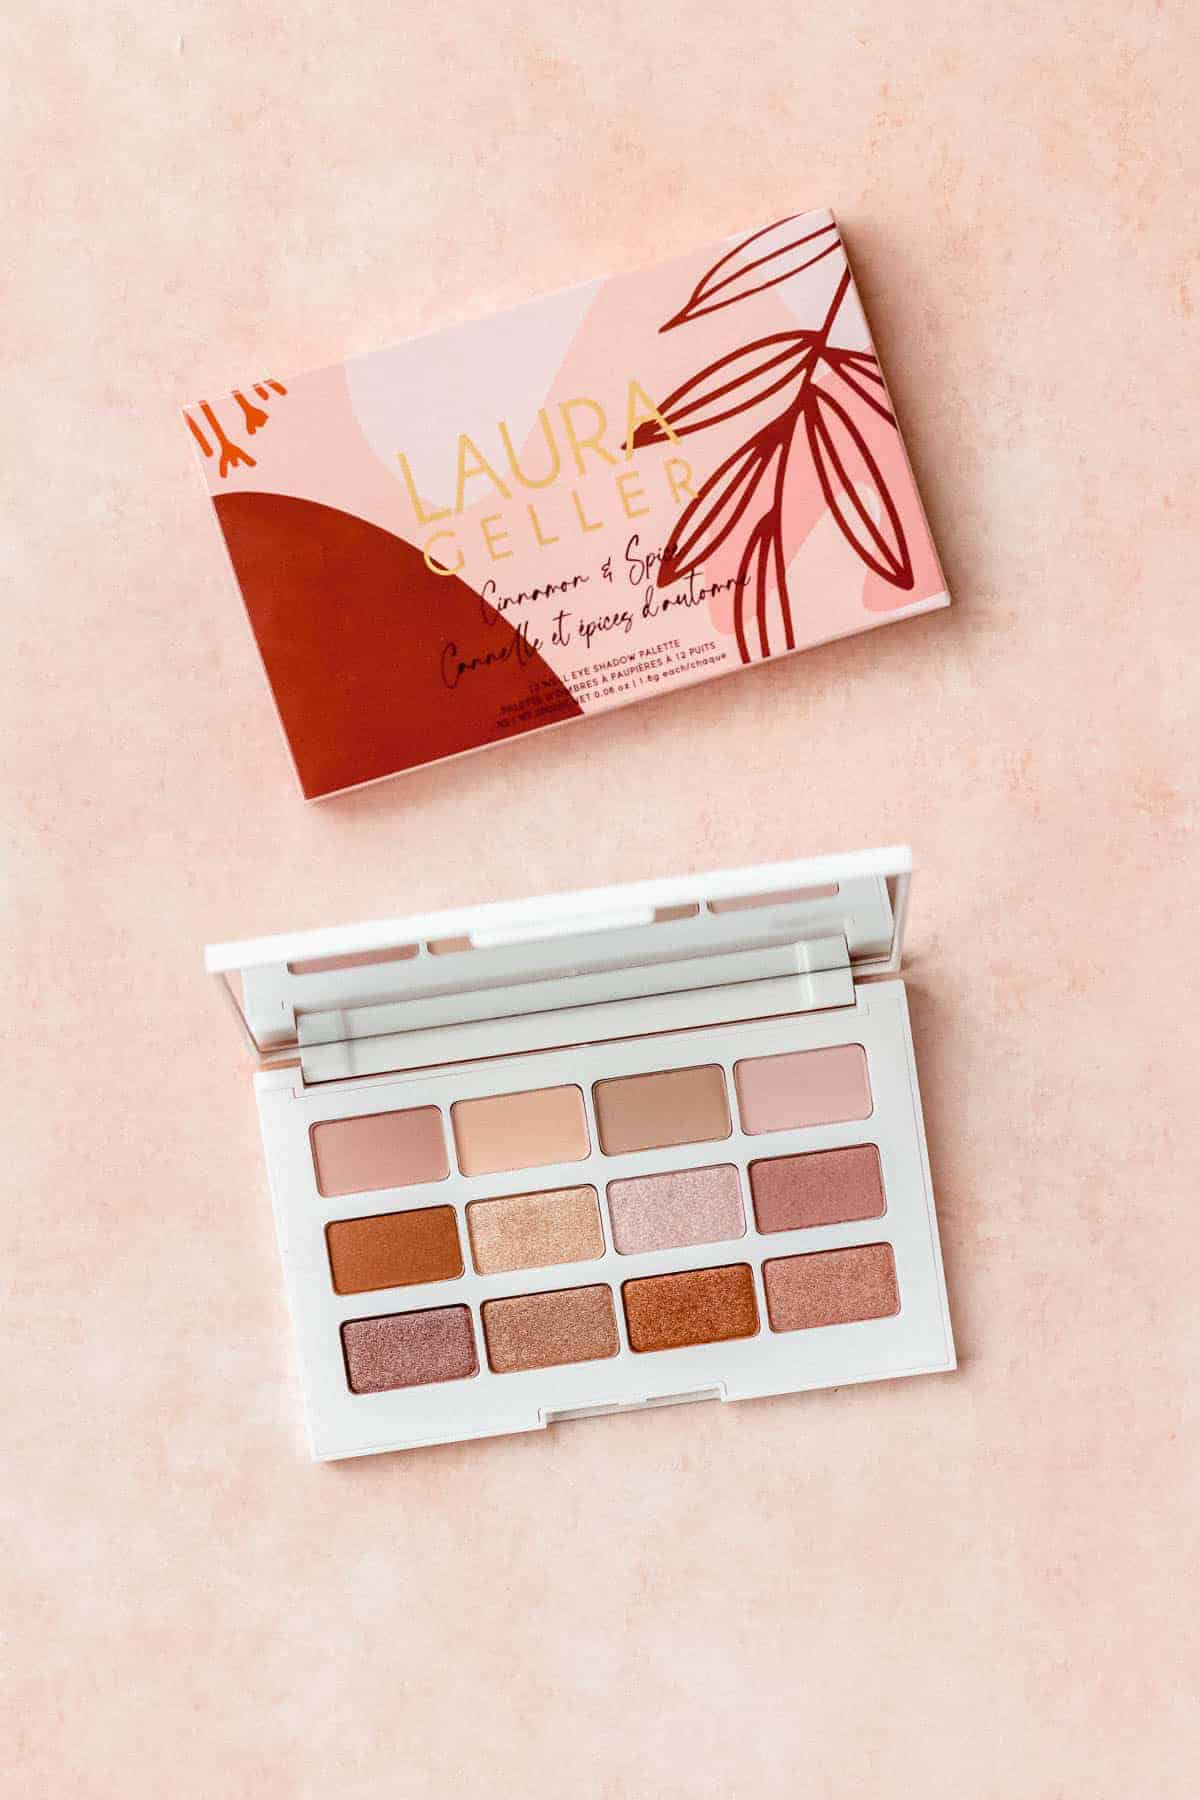 Laura Geller Cinnamon + Spice Eyeshadow Palette opened with packaging on a peach background